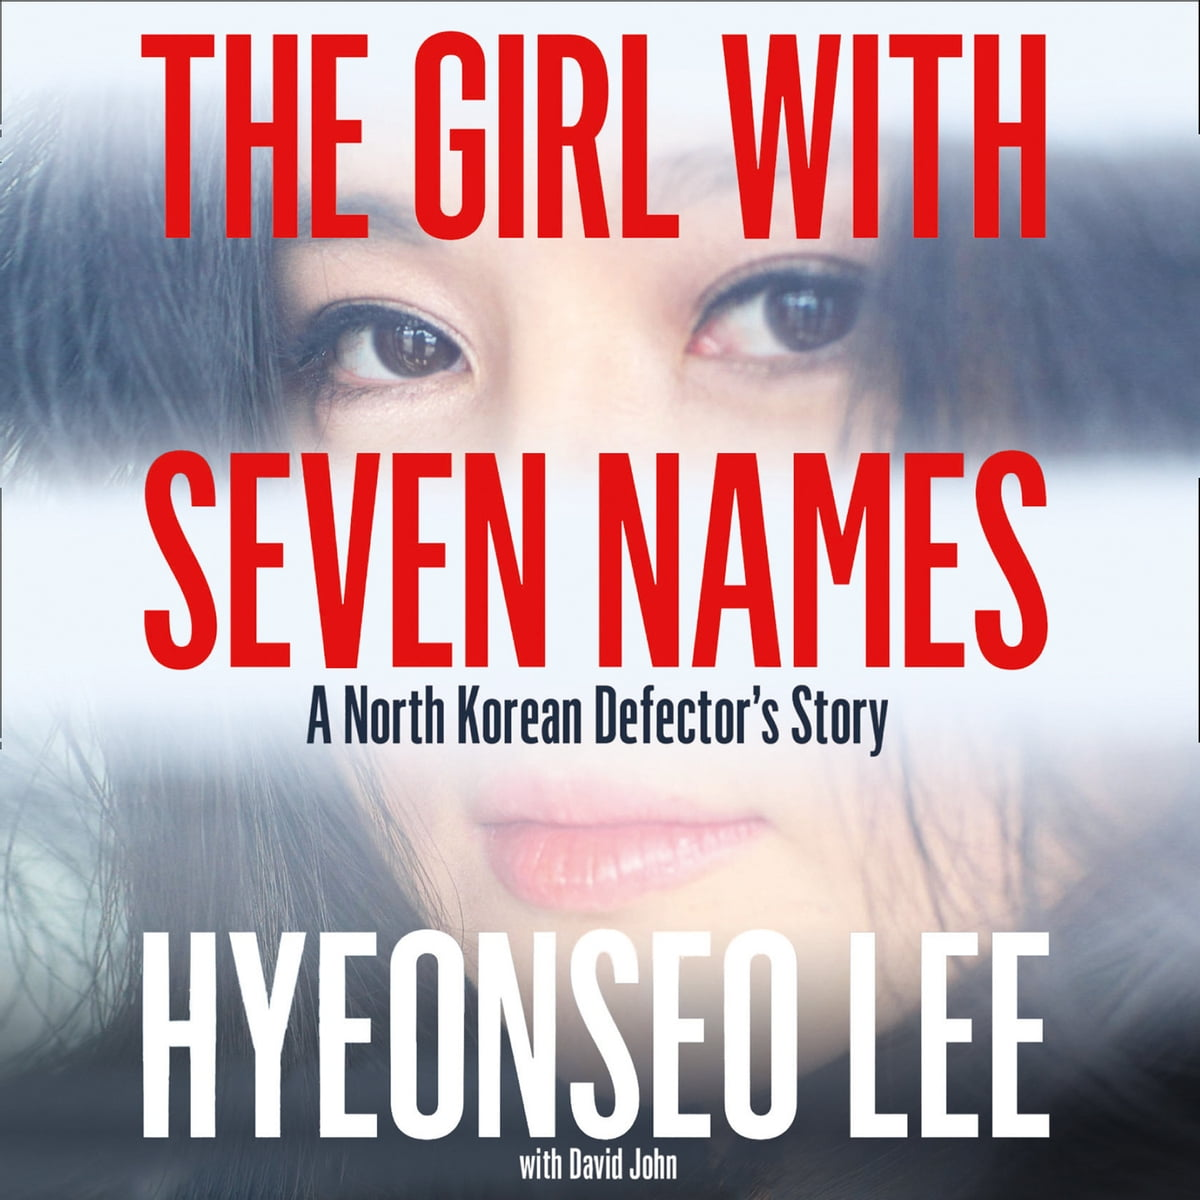 The Girl with Seven Names: A North Korean Defector's Story audiobook by  Hyeonseo Lee - Rakuten Kobo